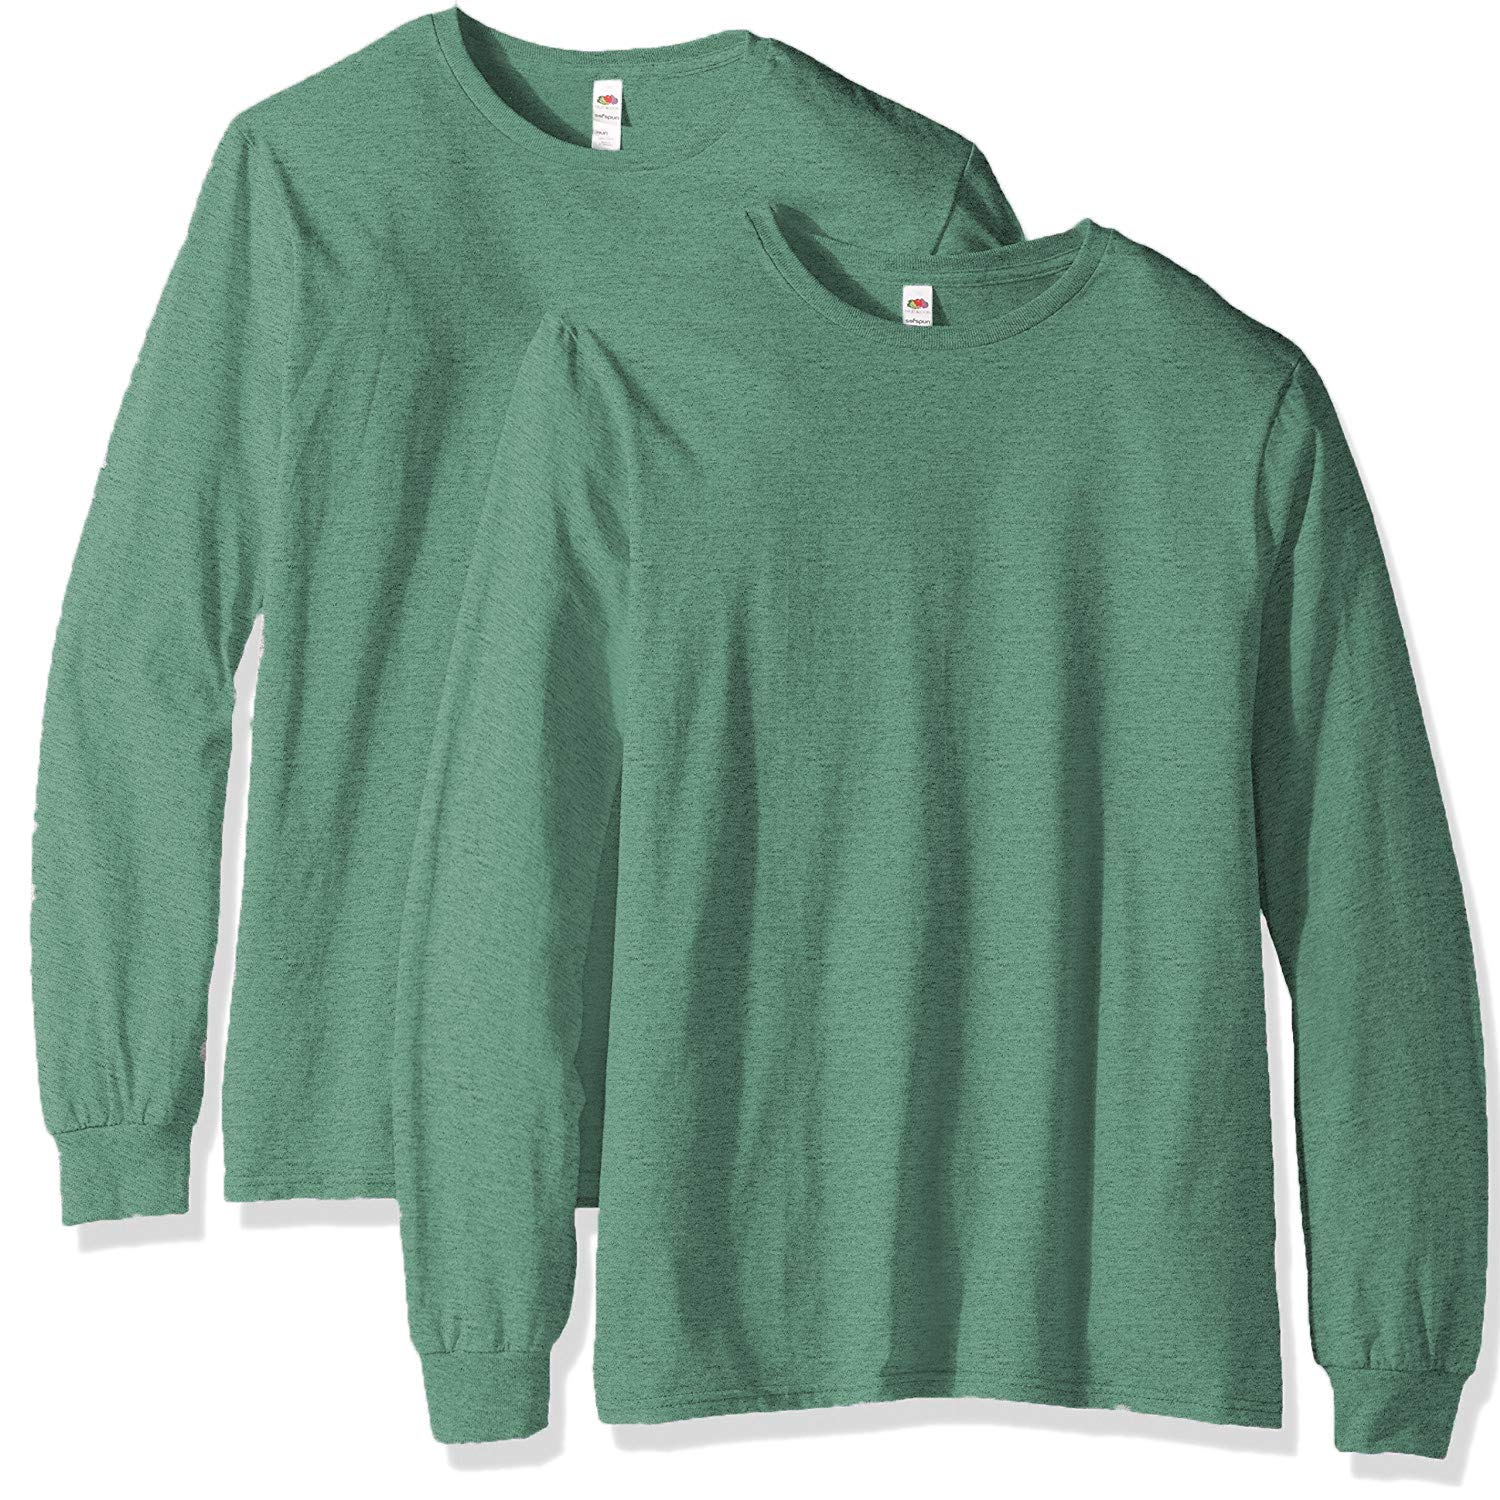 4f703b042 Fruit of the Loom Men s Long Sleeve T-Shirt (2 Pack) at Amazon Men s  Clothing store